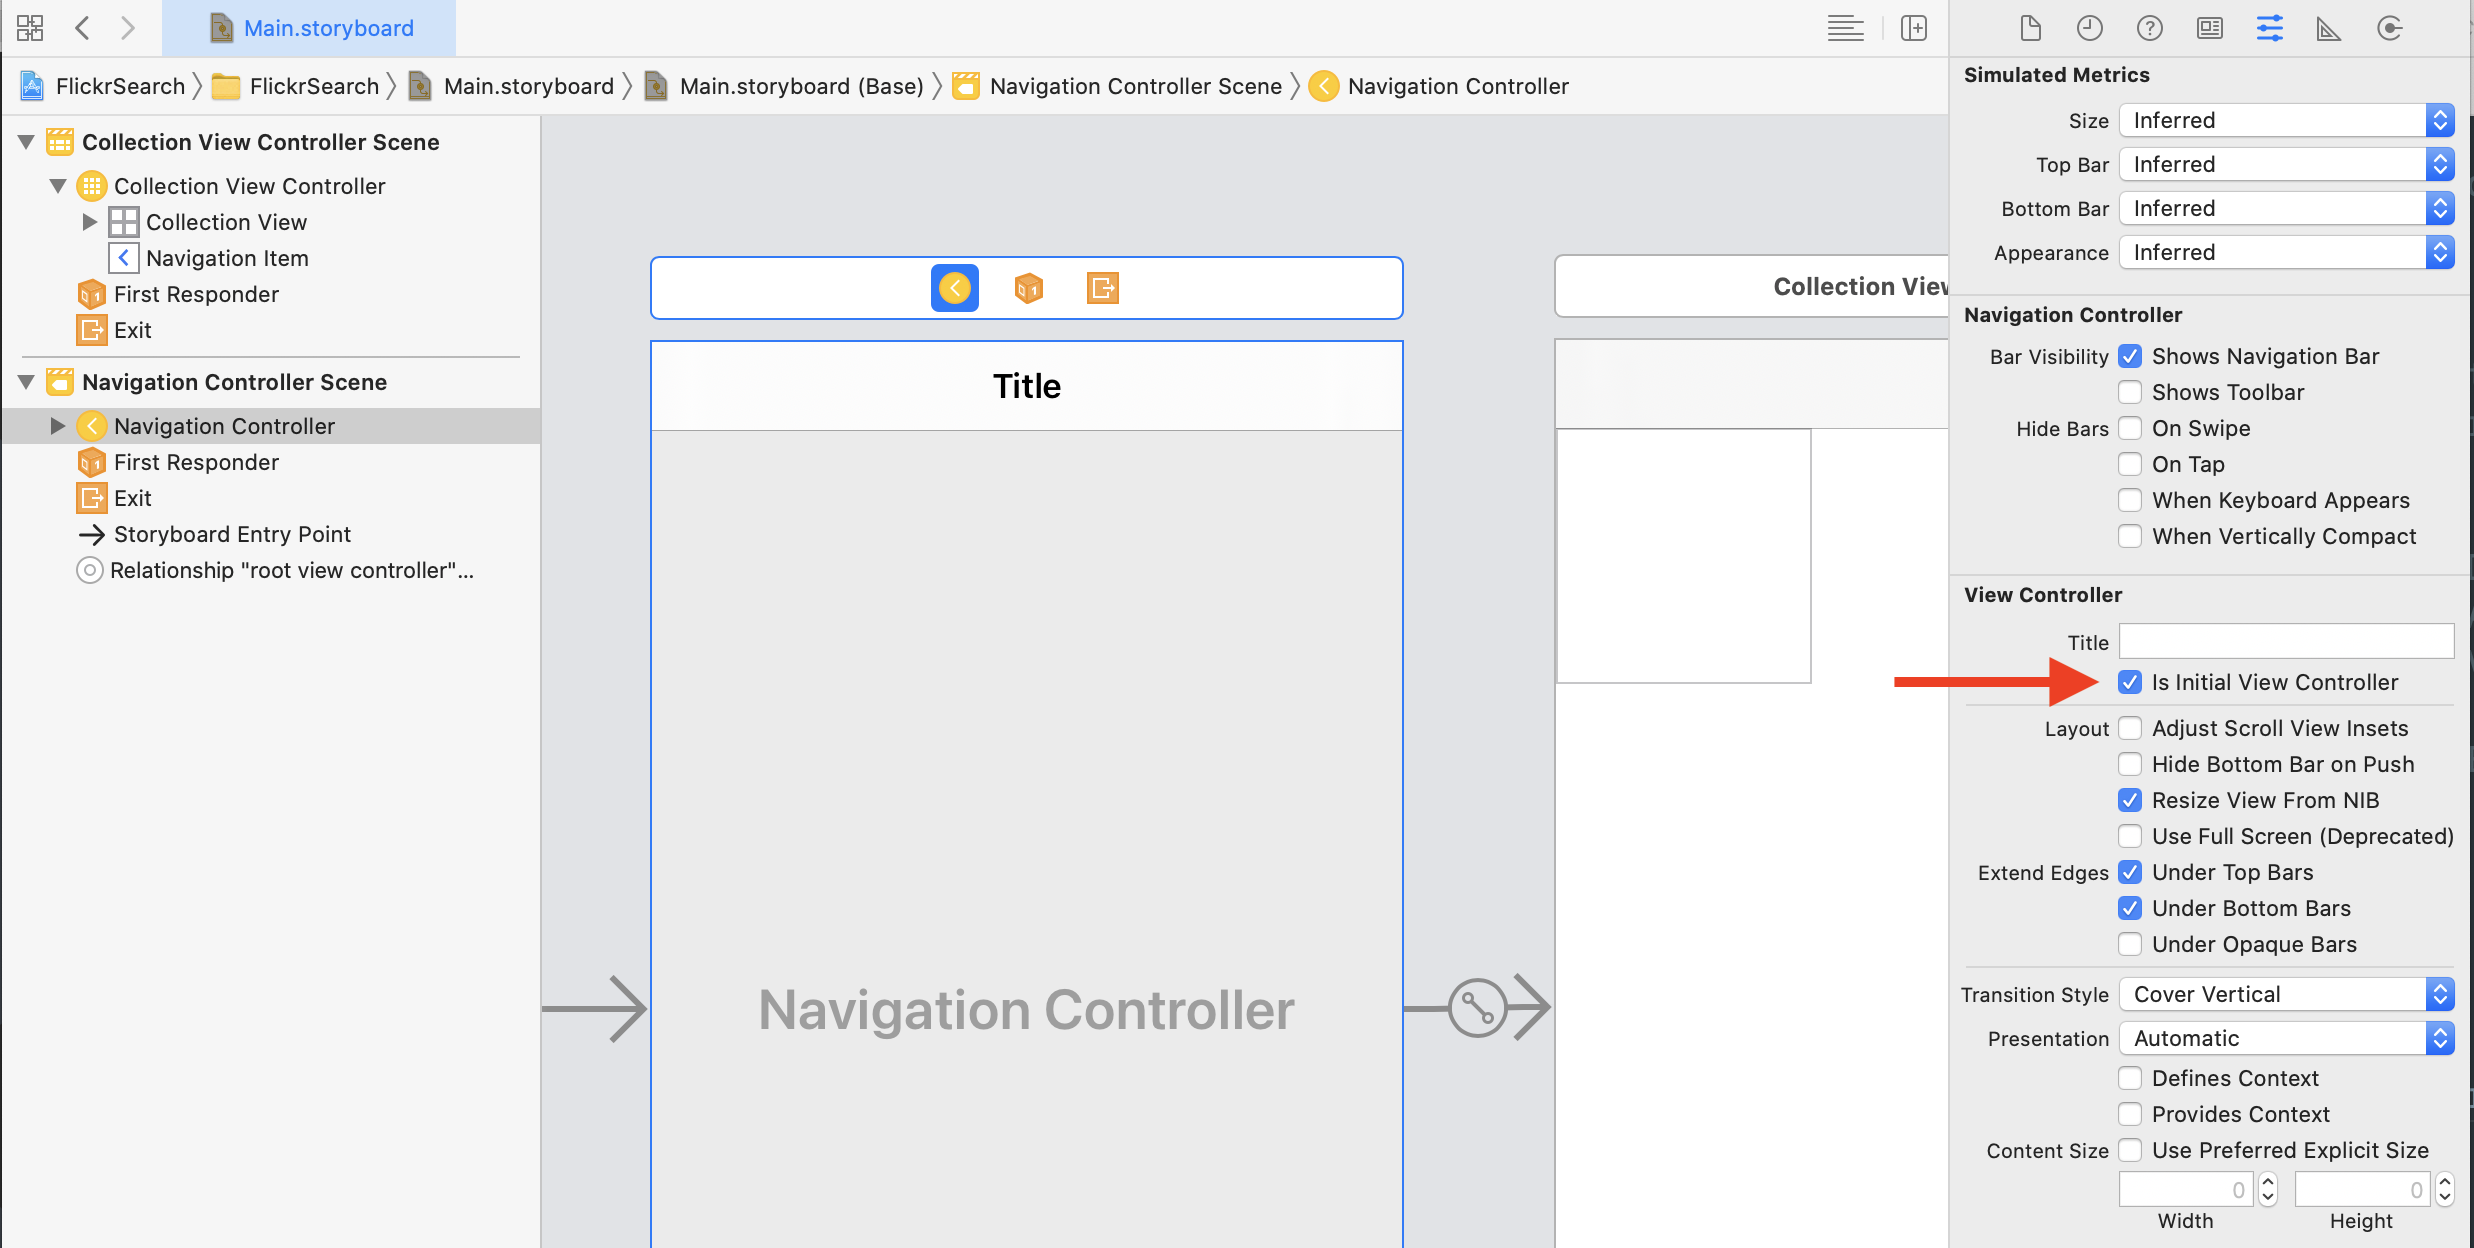 Setting UINavigationController as initial view controller